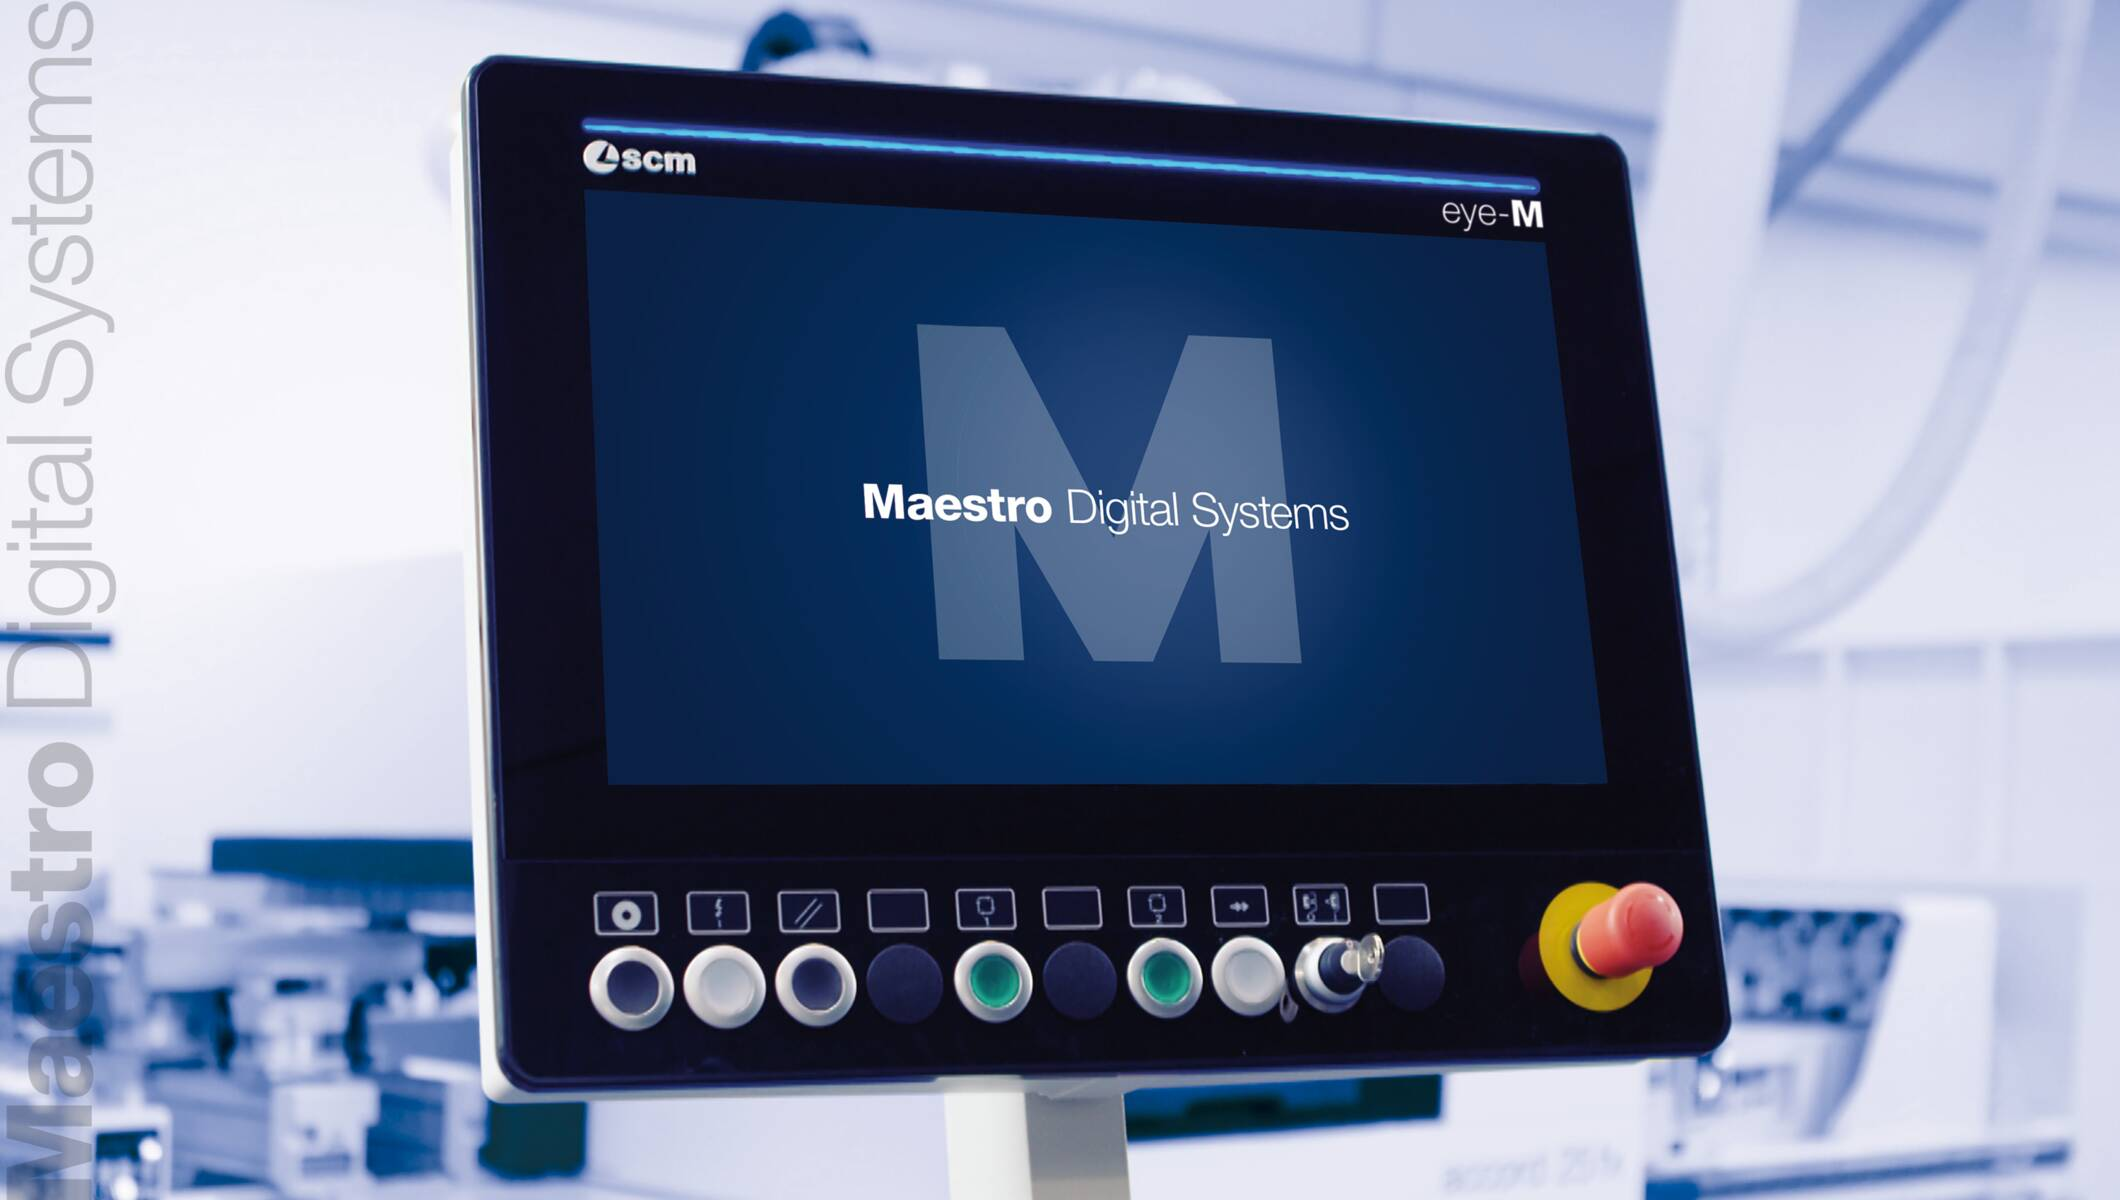 Maestro Digital Systems - Maestro Digital Systems - Consolle eye-M